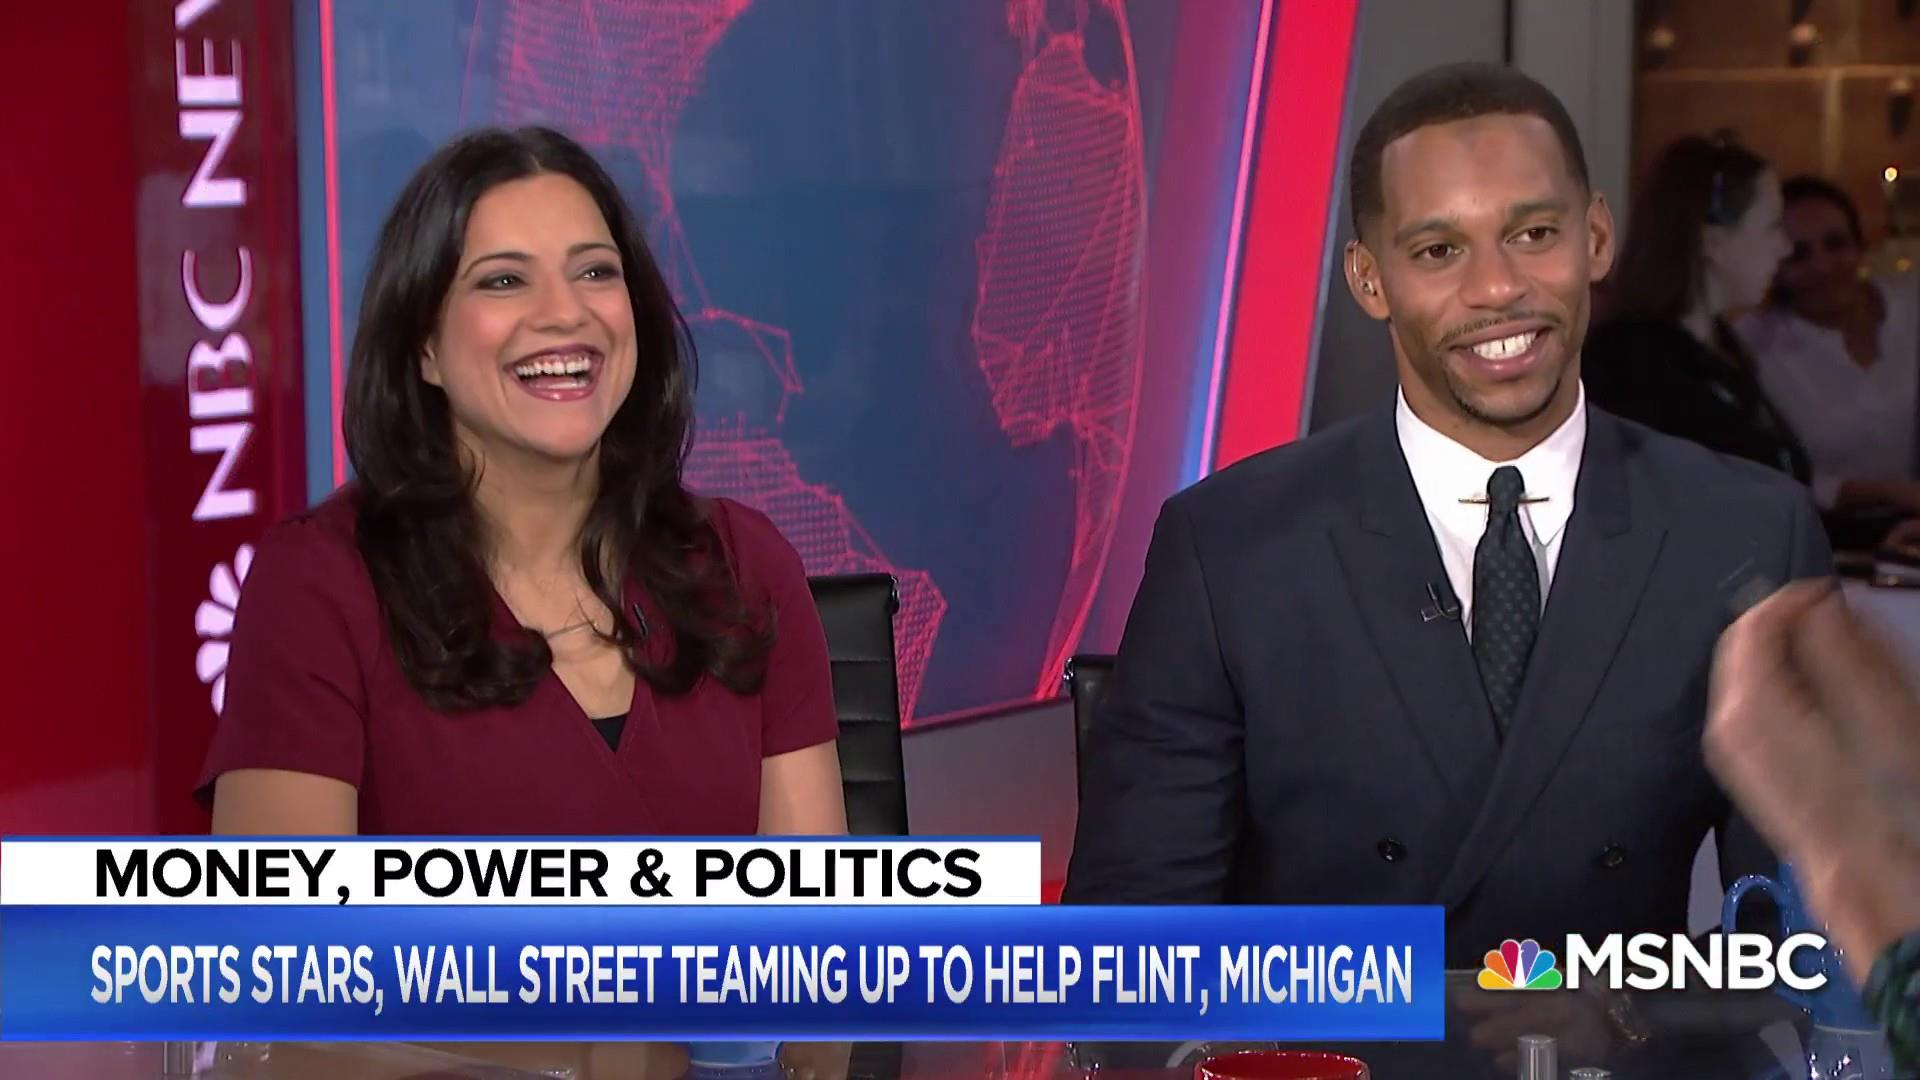 A group of venture capitalists invests in Flint, Michigan